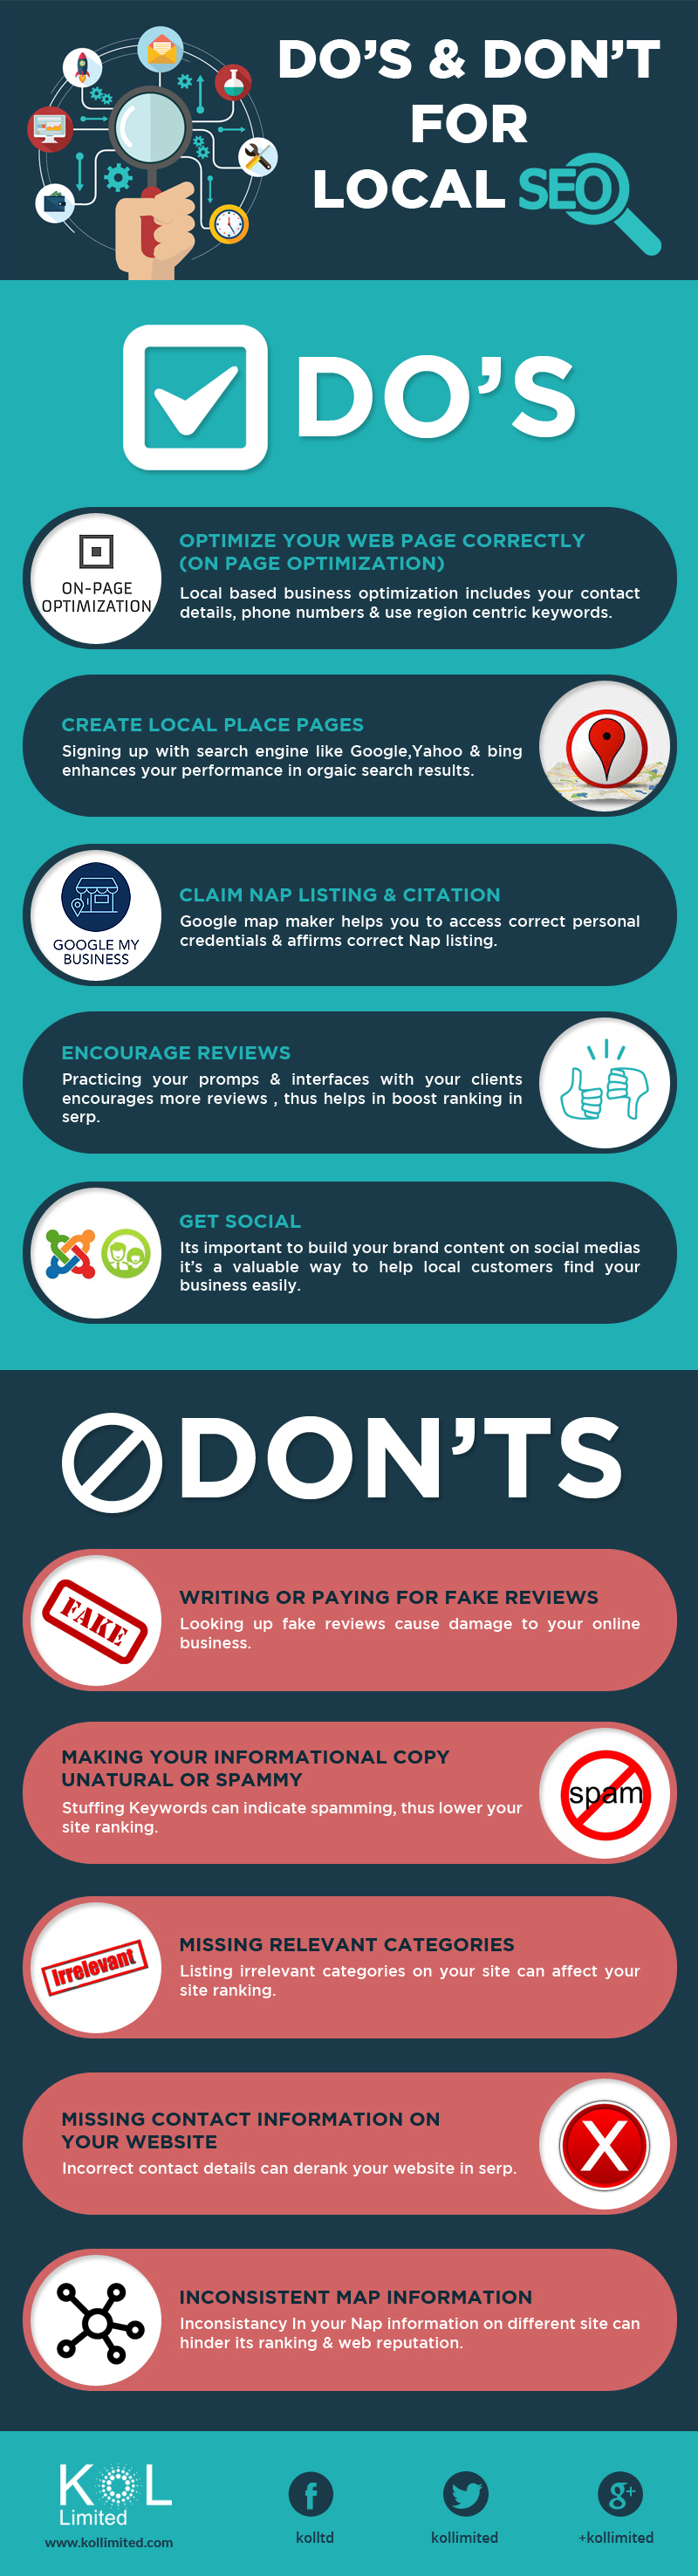 Do's & Don'ts for Local SEO